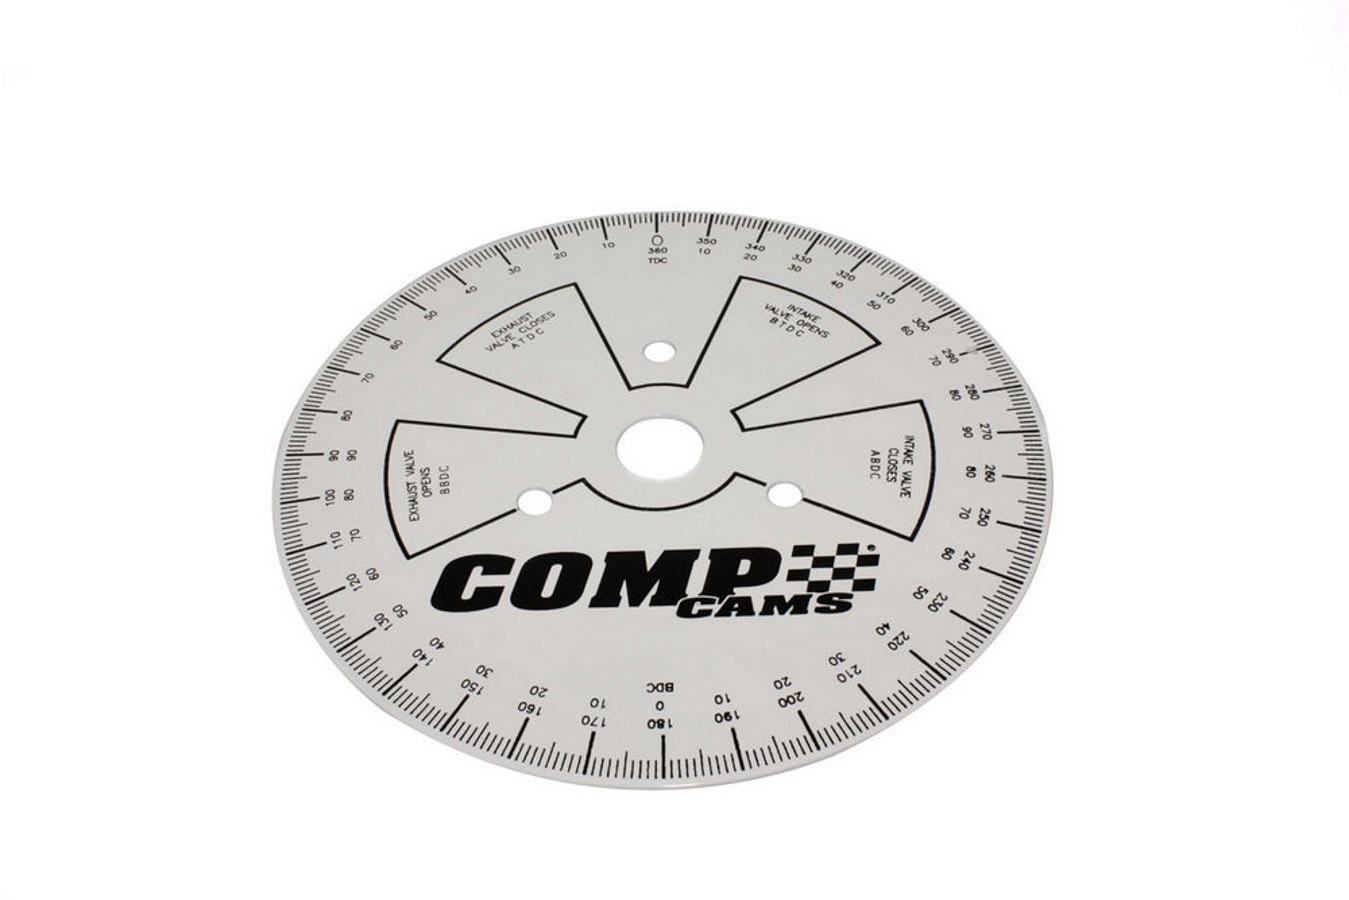 Comp Cams 4790 Degree Wheel, Sportsman, 9 in Diameter, Steel, White, Black Print, Each